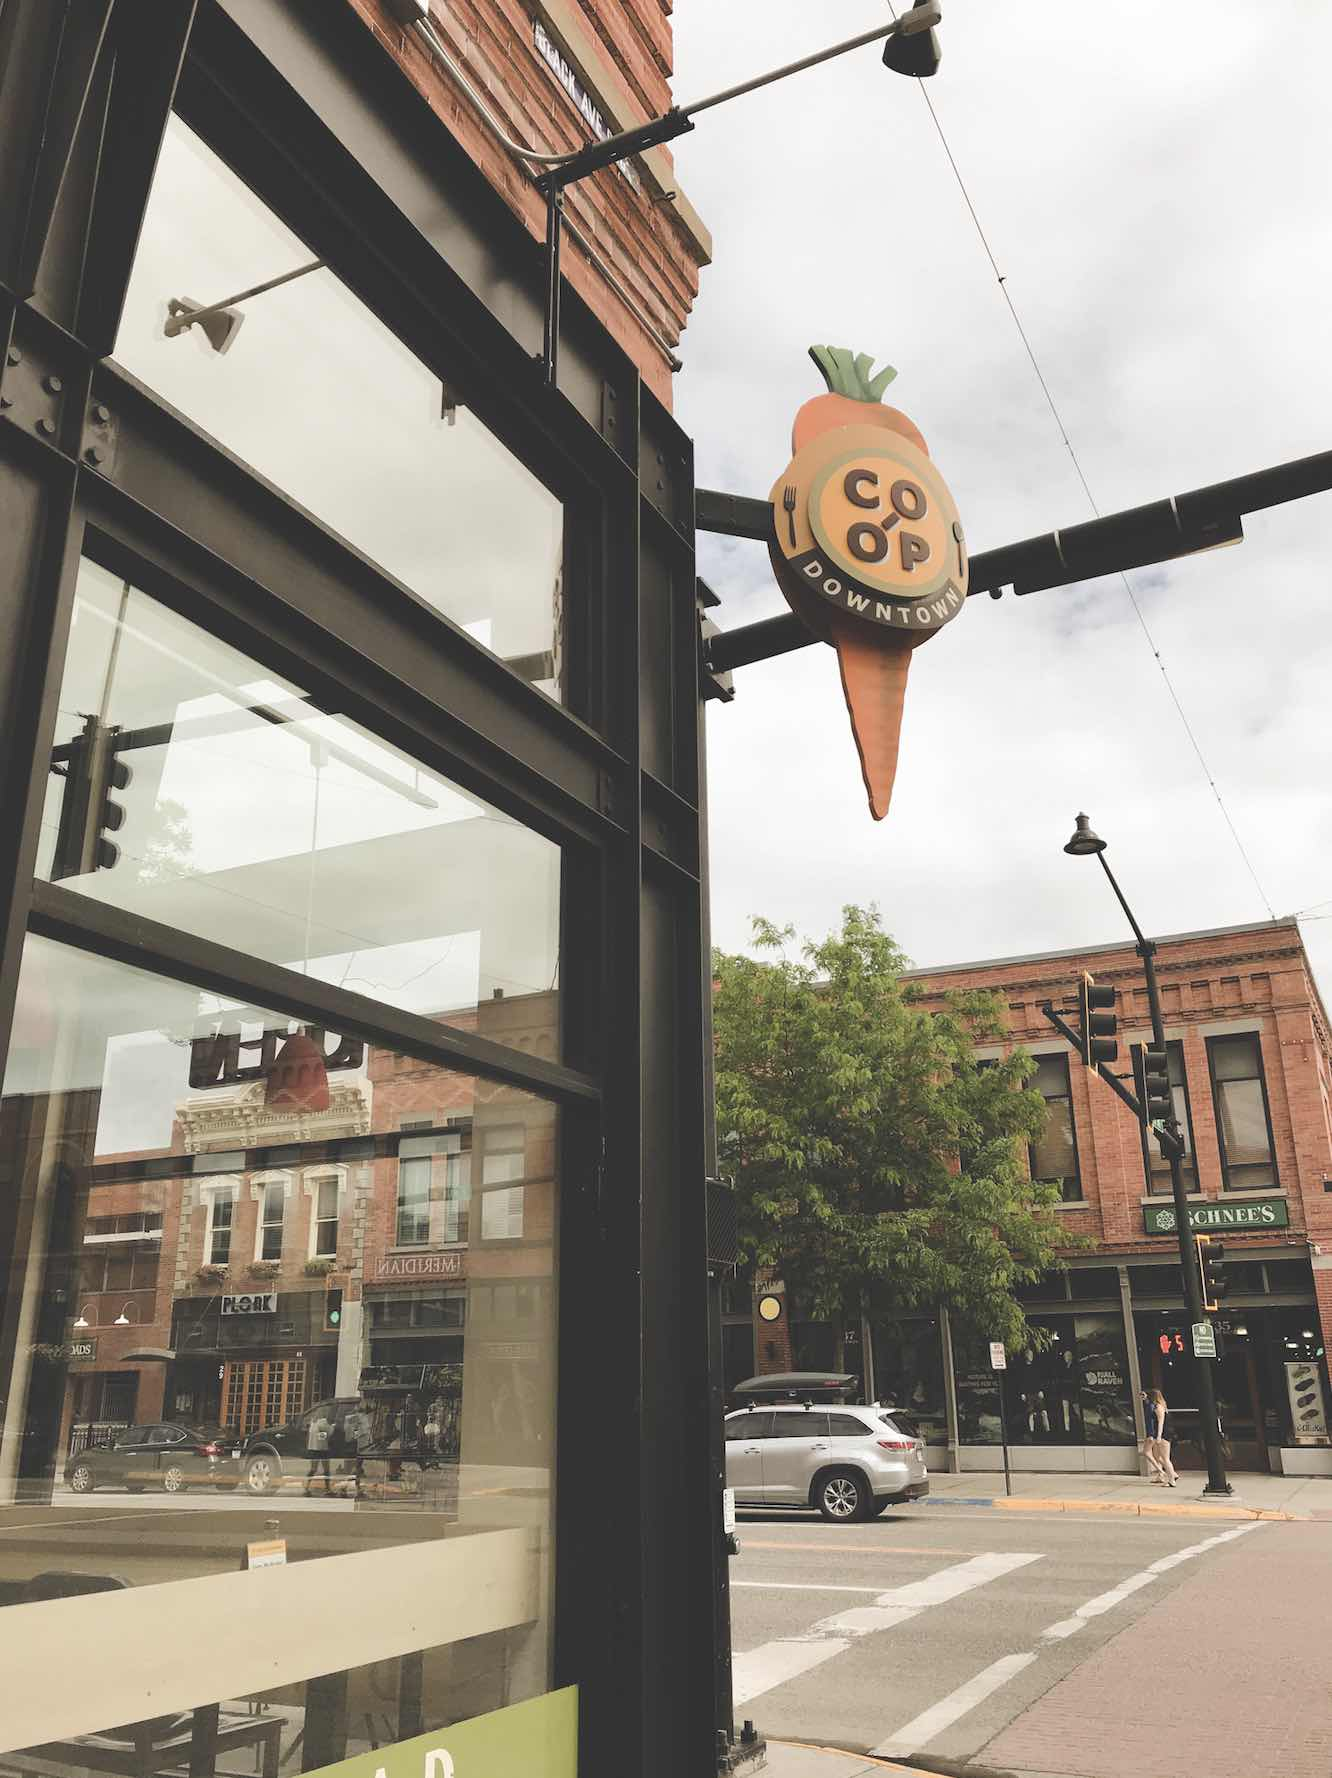 Bozeman Food and Restaurants Co Op Downtown Bozeman